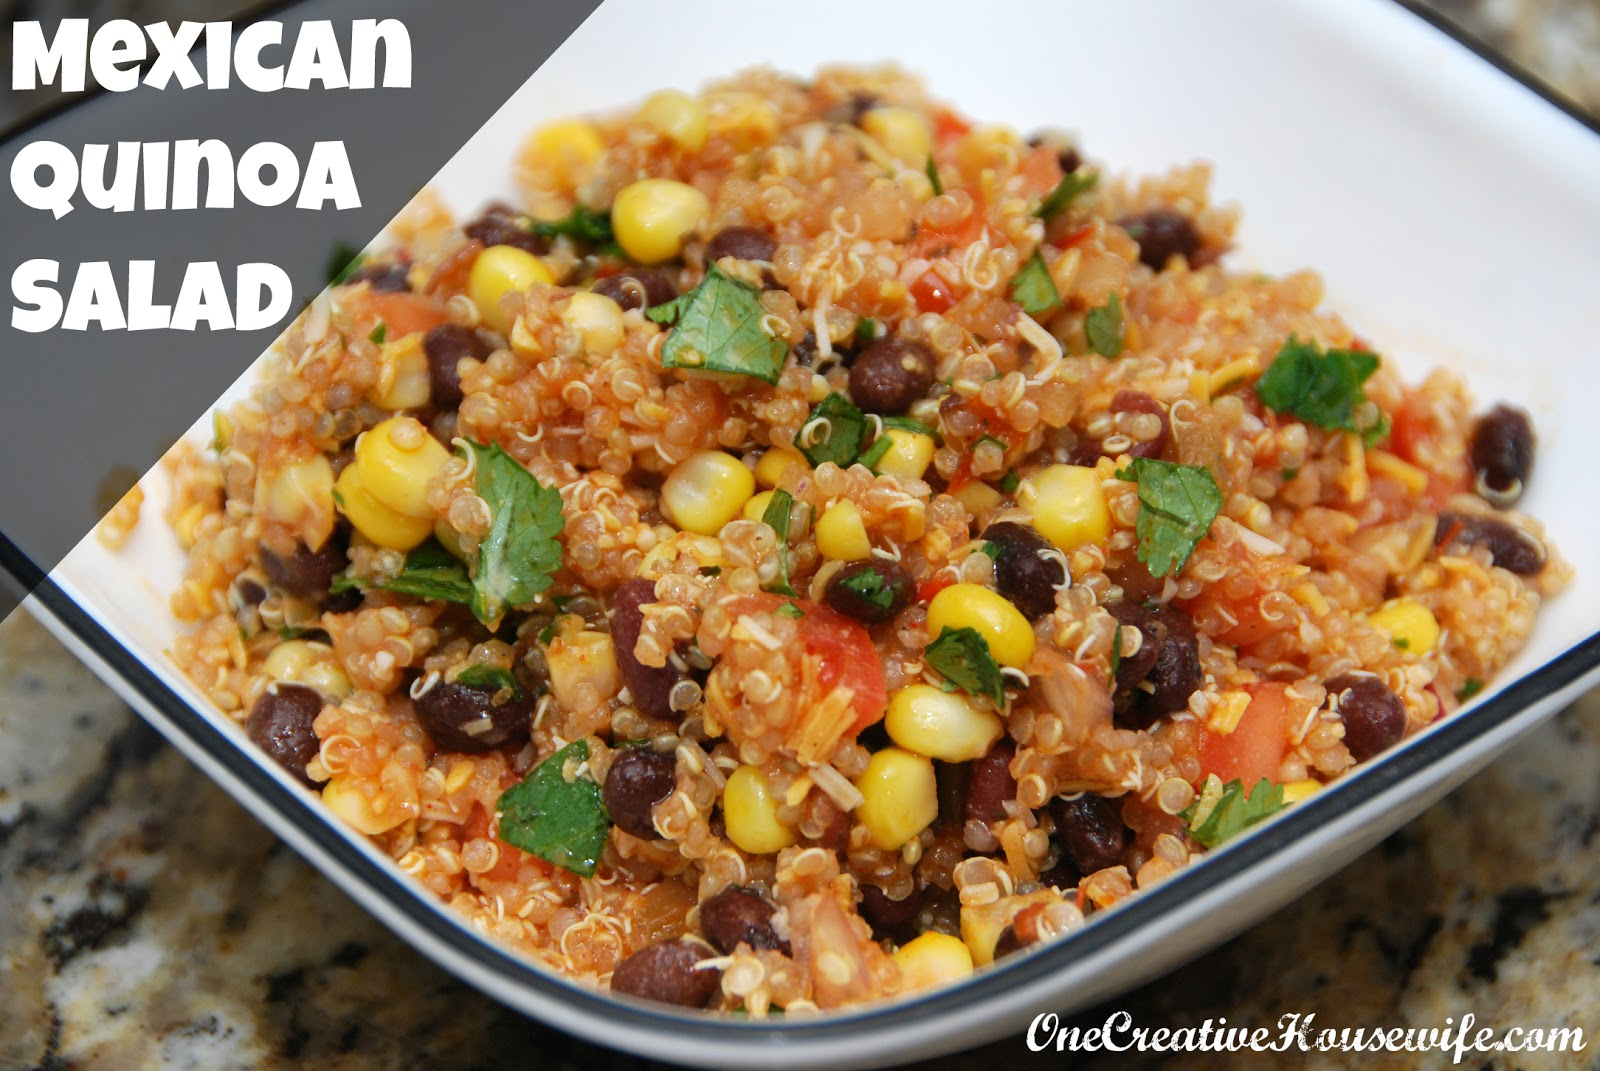 One Creative Housewife: Mexican Quinoa Salad